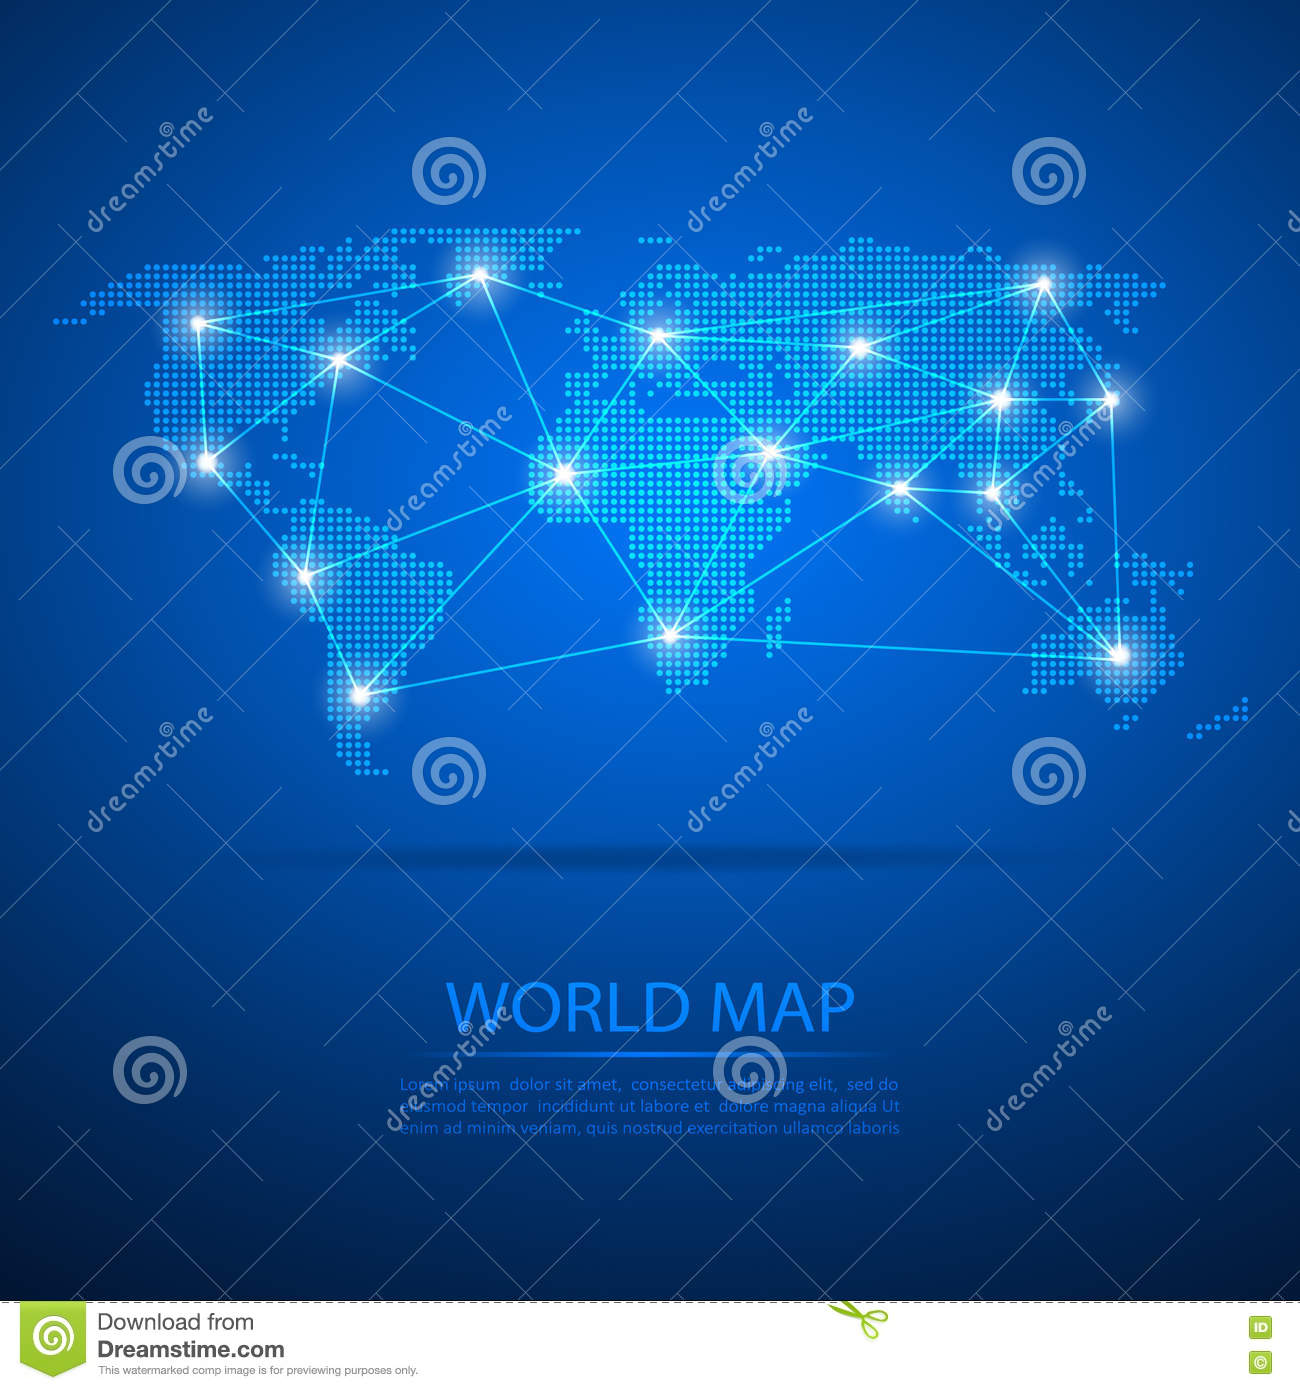 World map with dot nodes vector design dots map dots map world map with dot nodes vector design dots map dots map background royalty free illustration gumiabroncs Choice Image